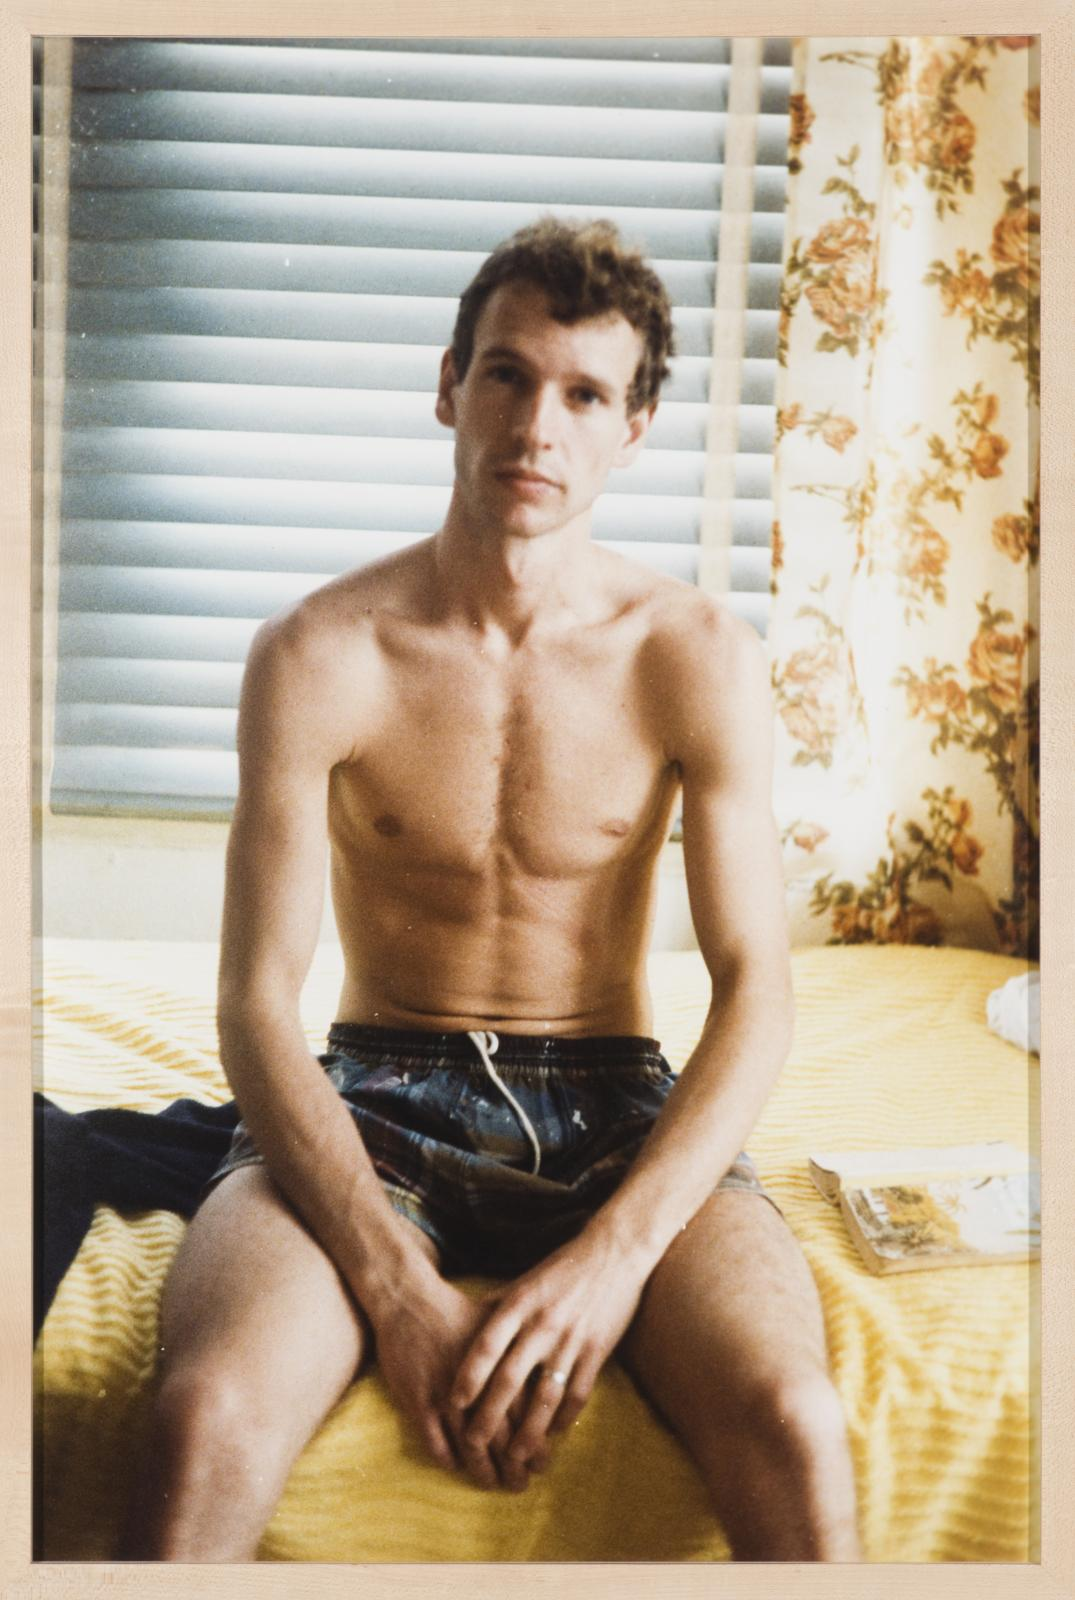 A topless, light-skinned man sits on a bed in a swimming suit. His head tilts just slightly to his left as he looks directly at the viewer.